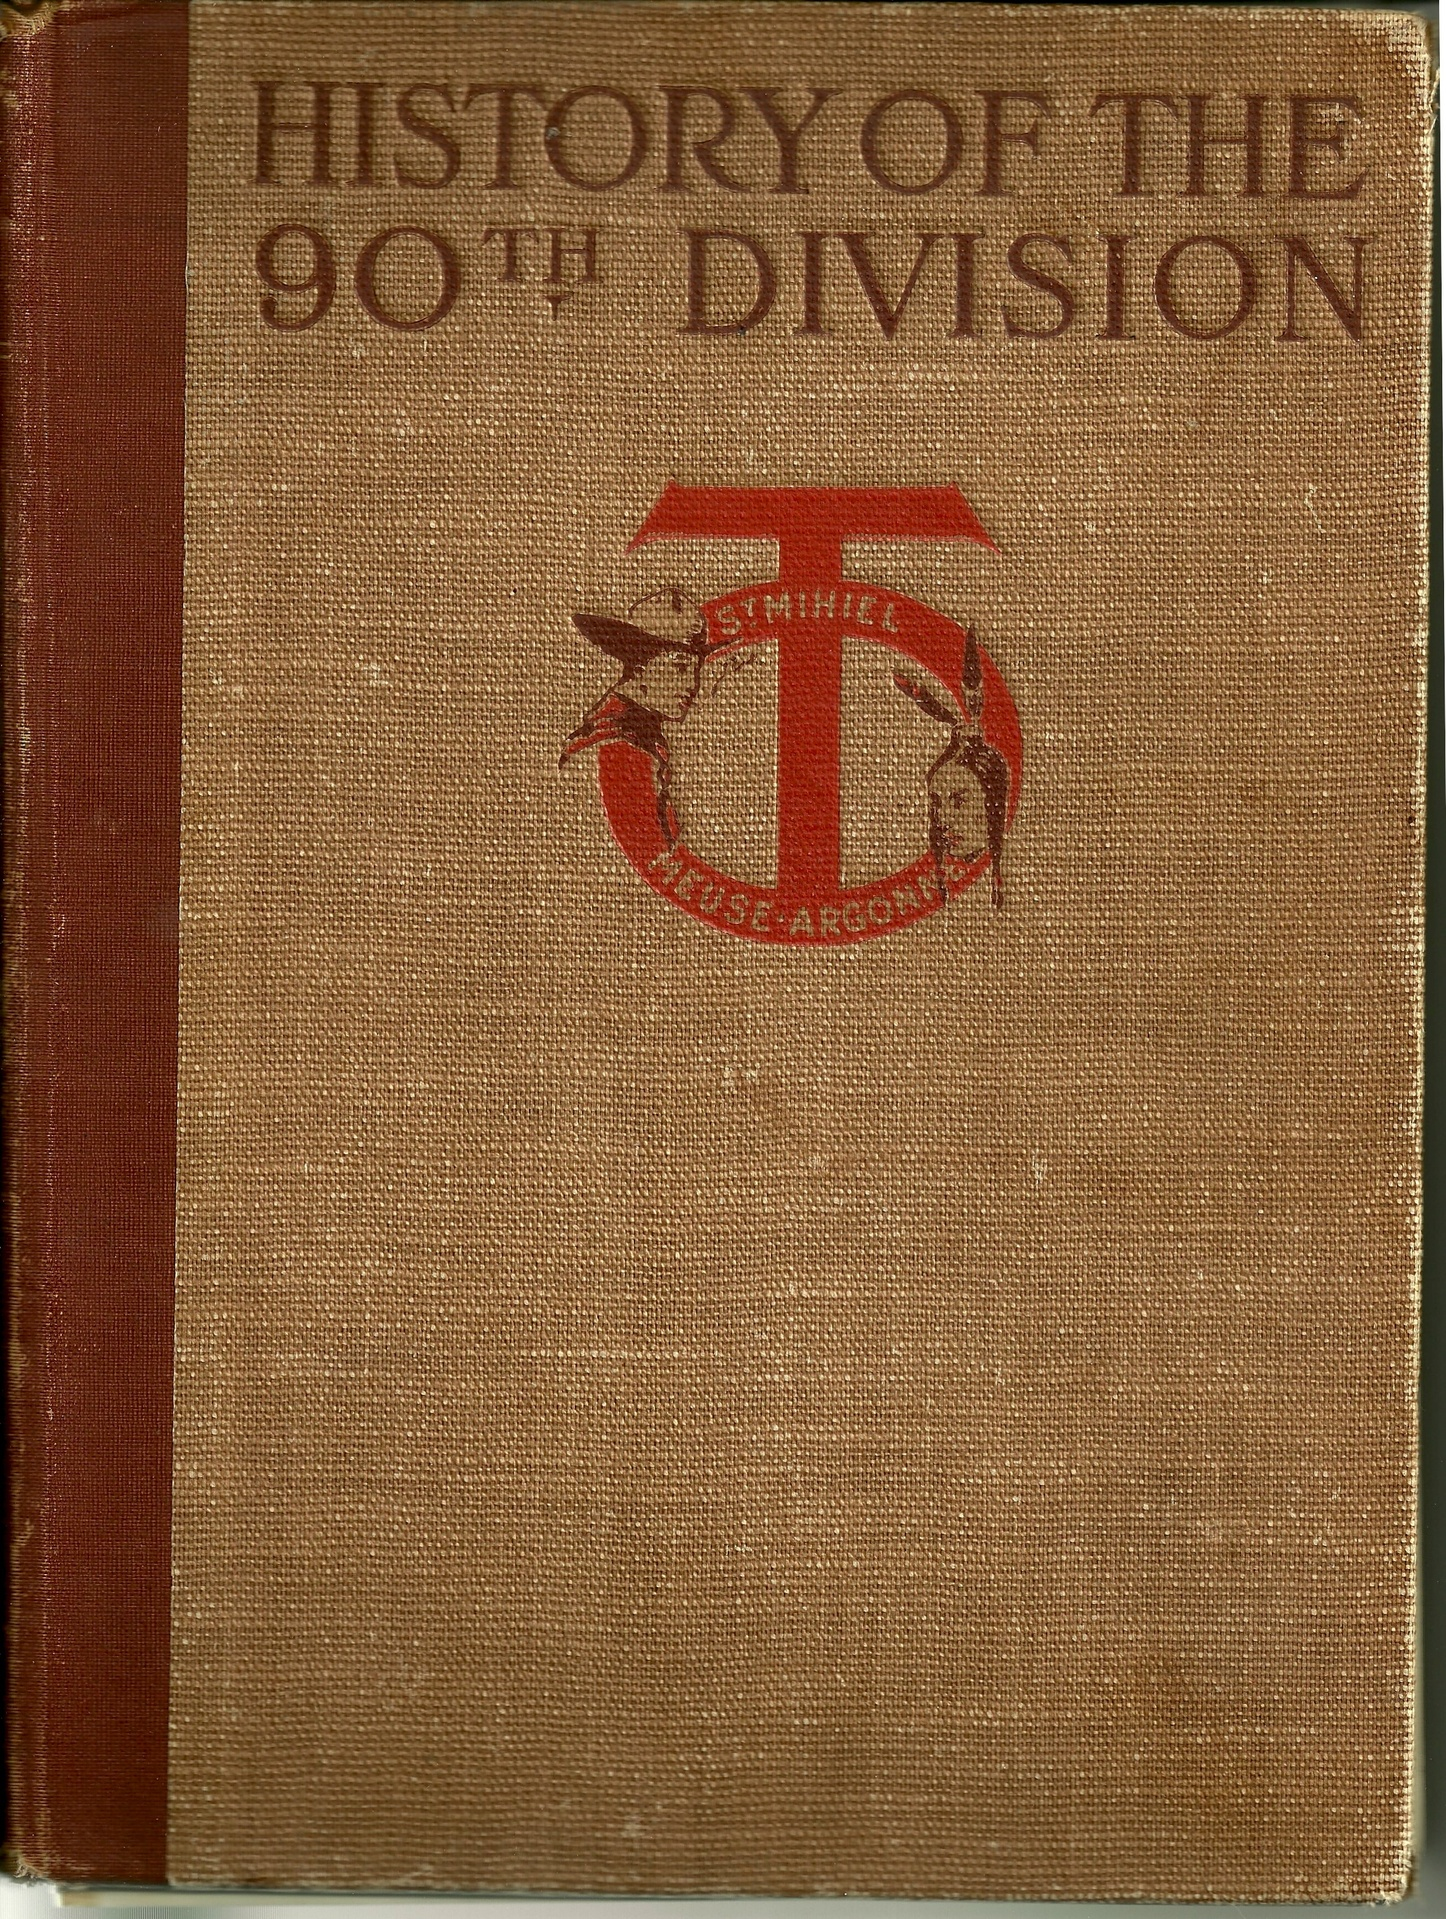 Cover of the Texas/Oklahoma Division History